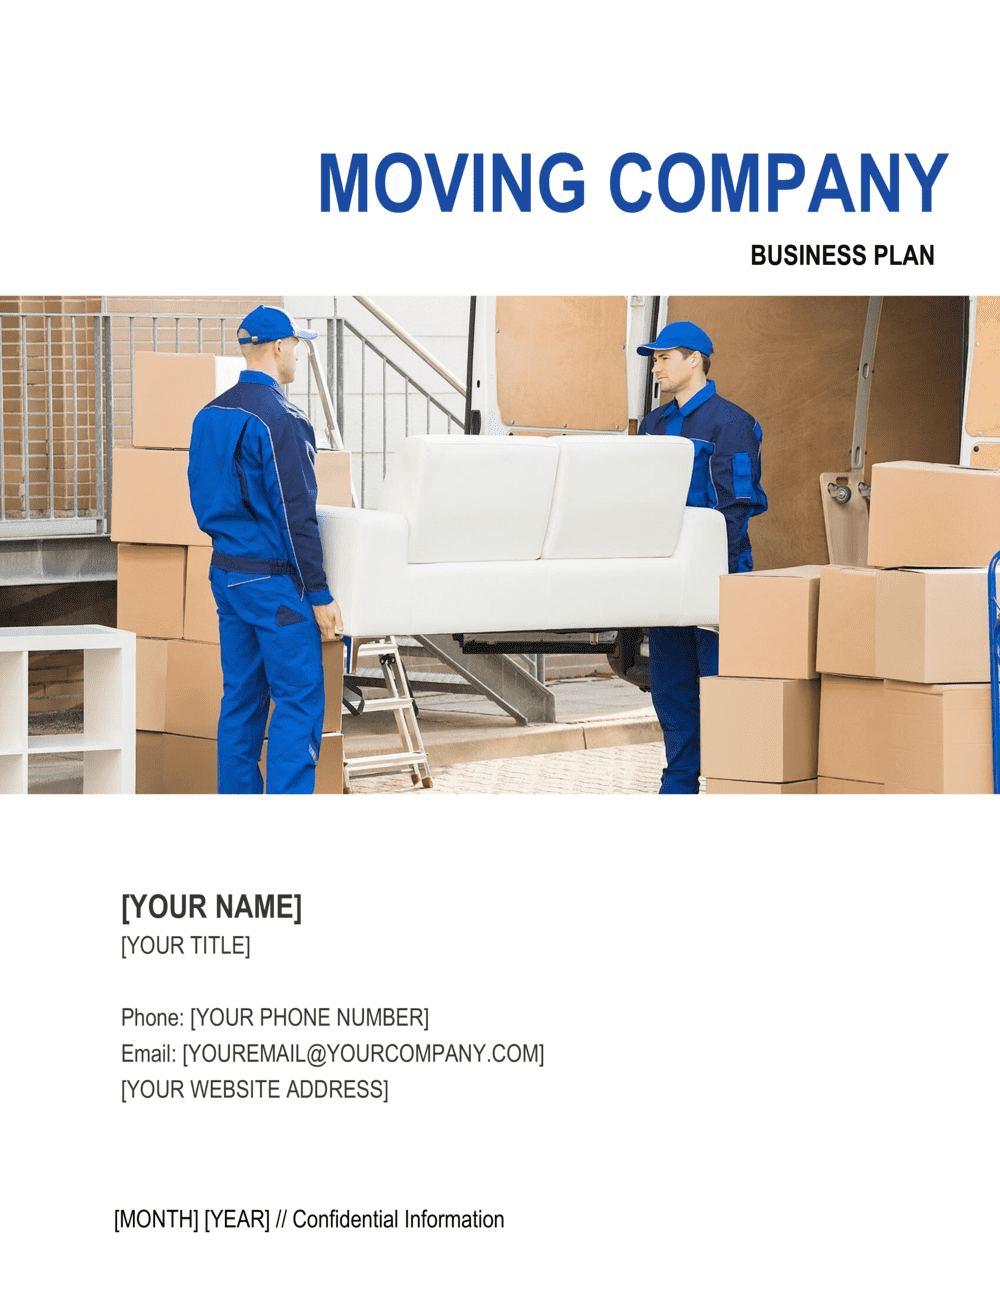 Business-in-a-Box's Moving Company Business Plan Template